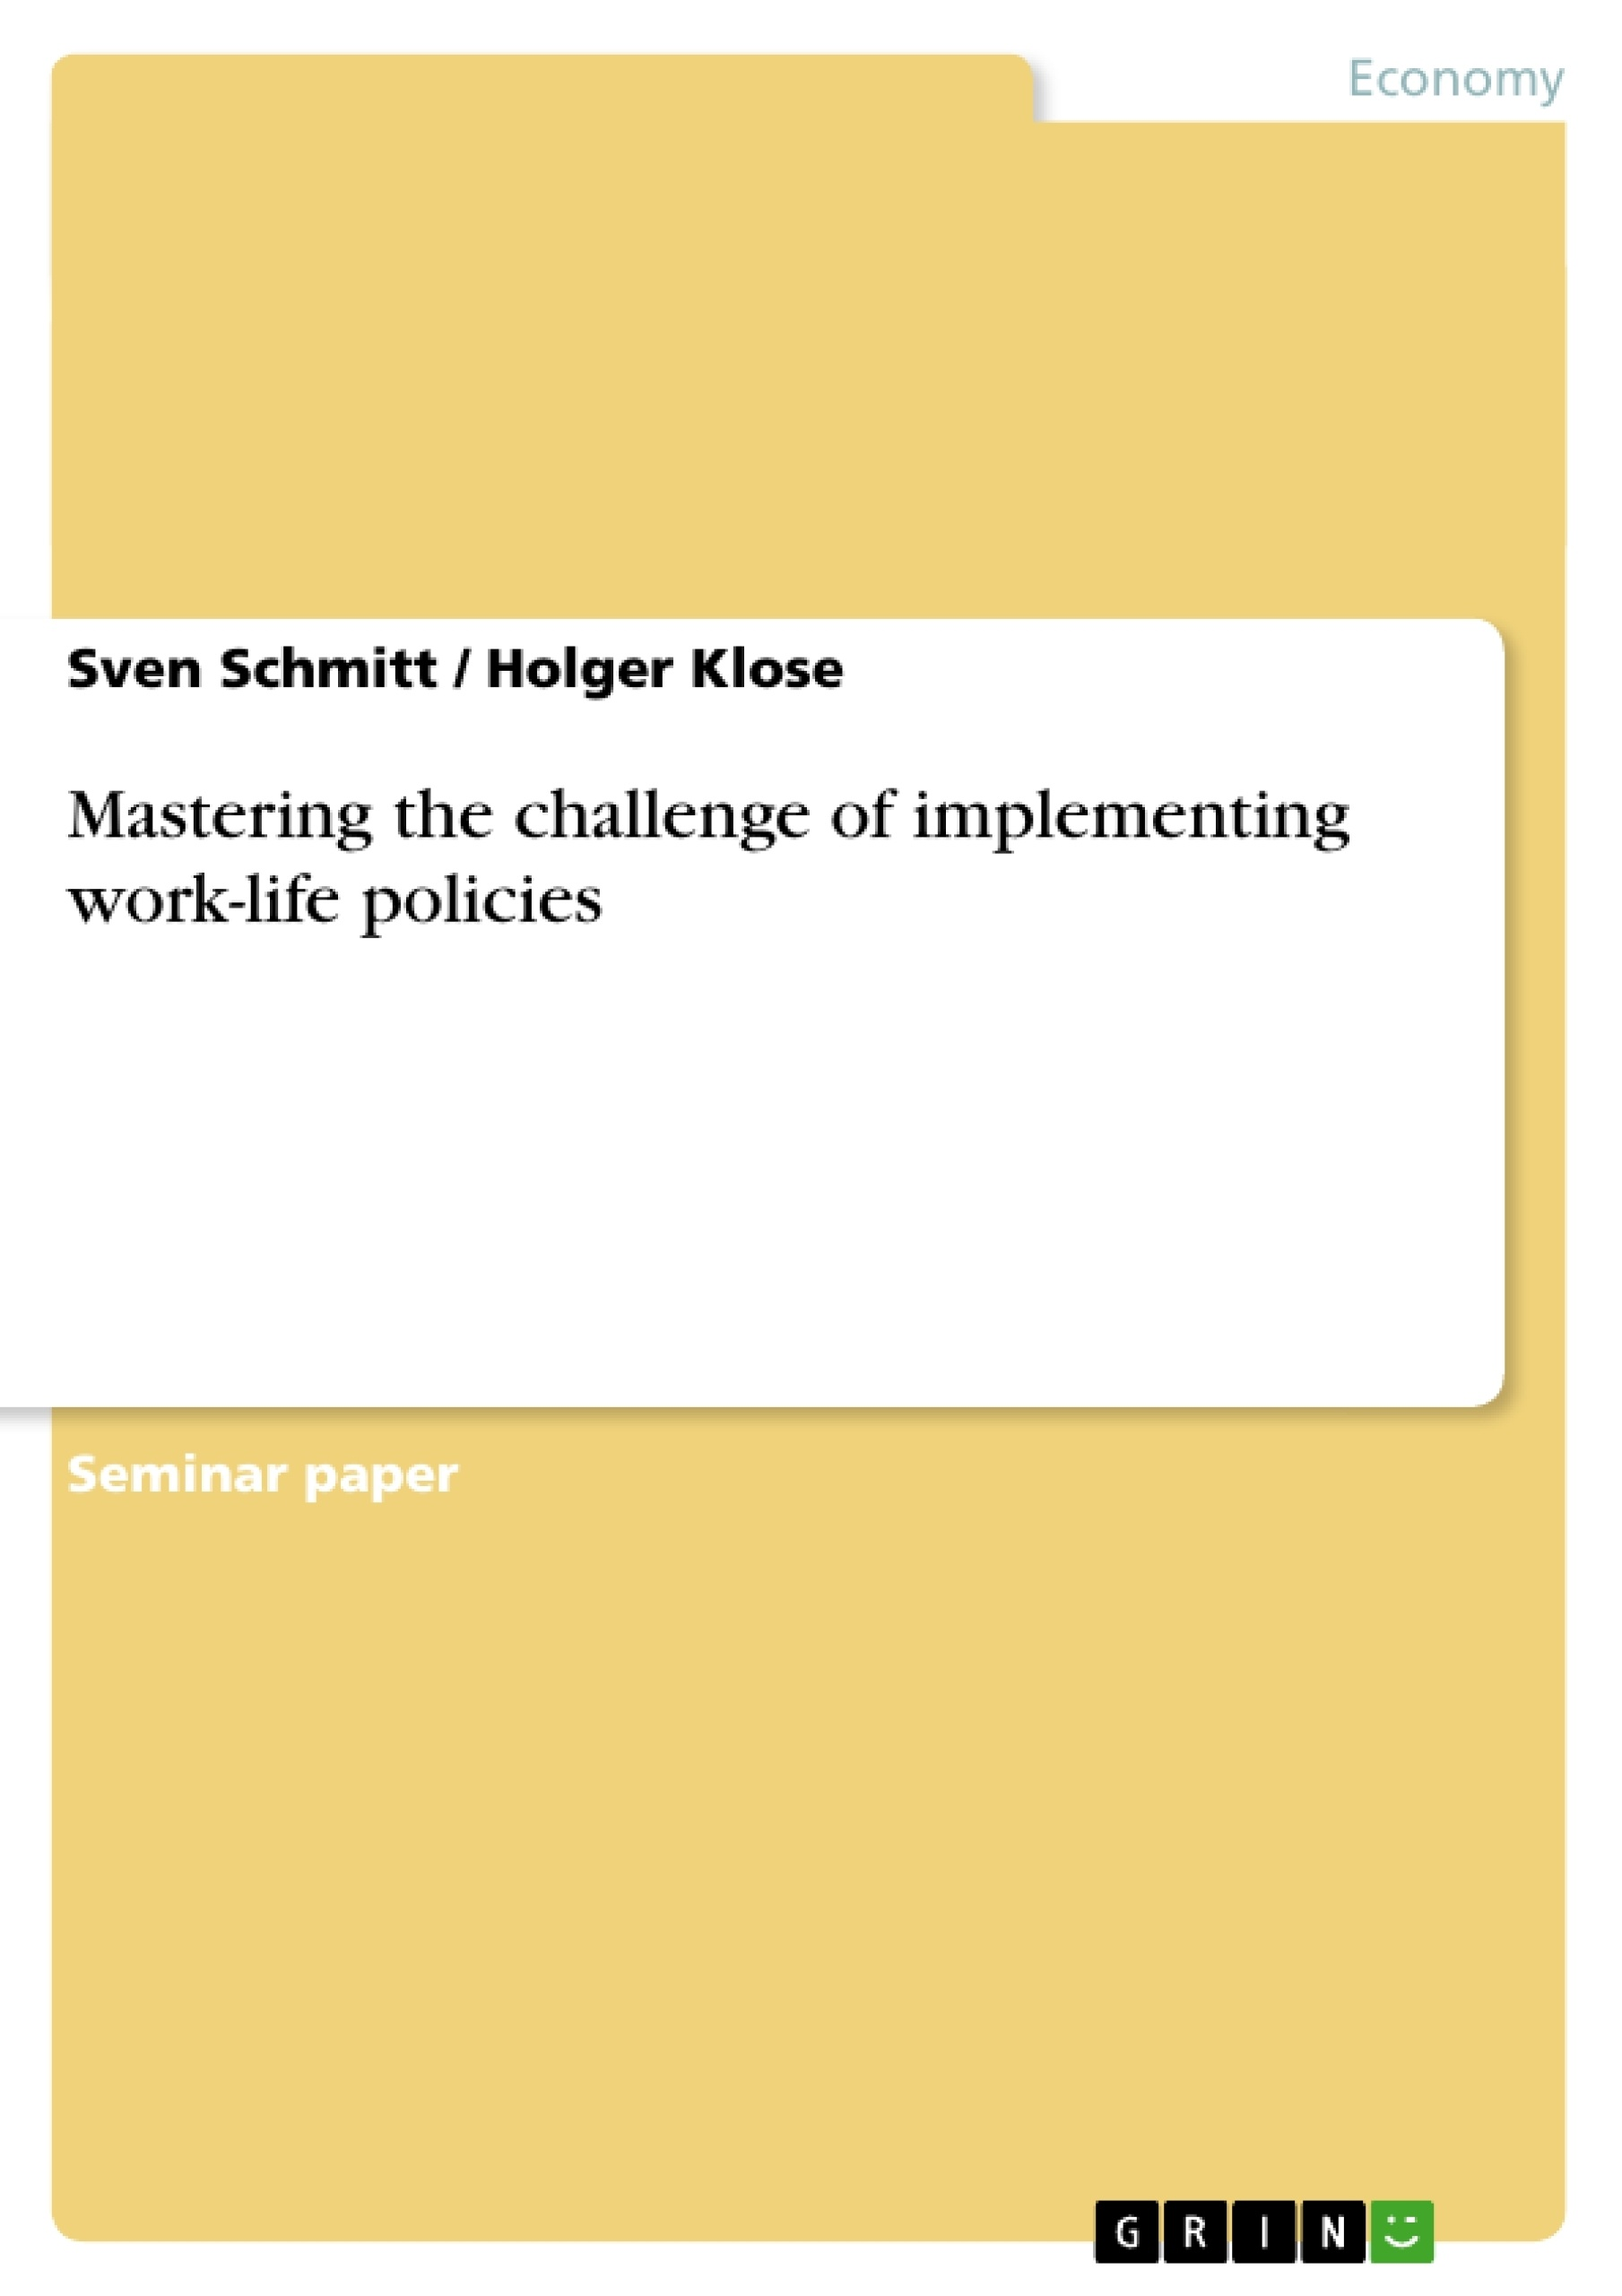 Title: Mastering the challenge of implementing work-life policies